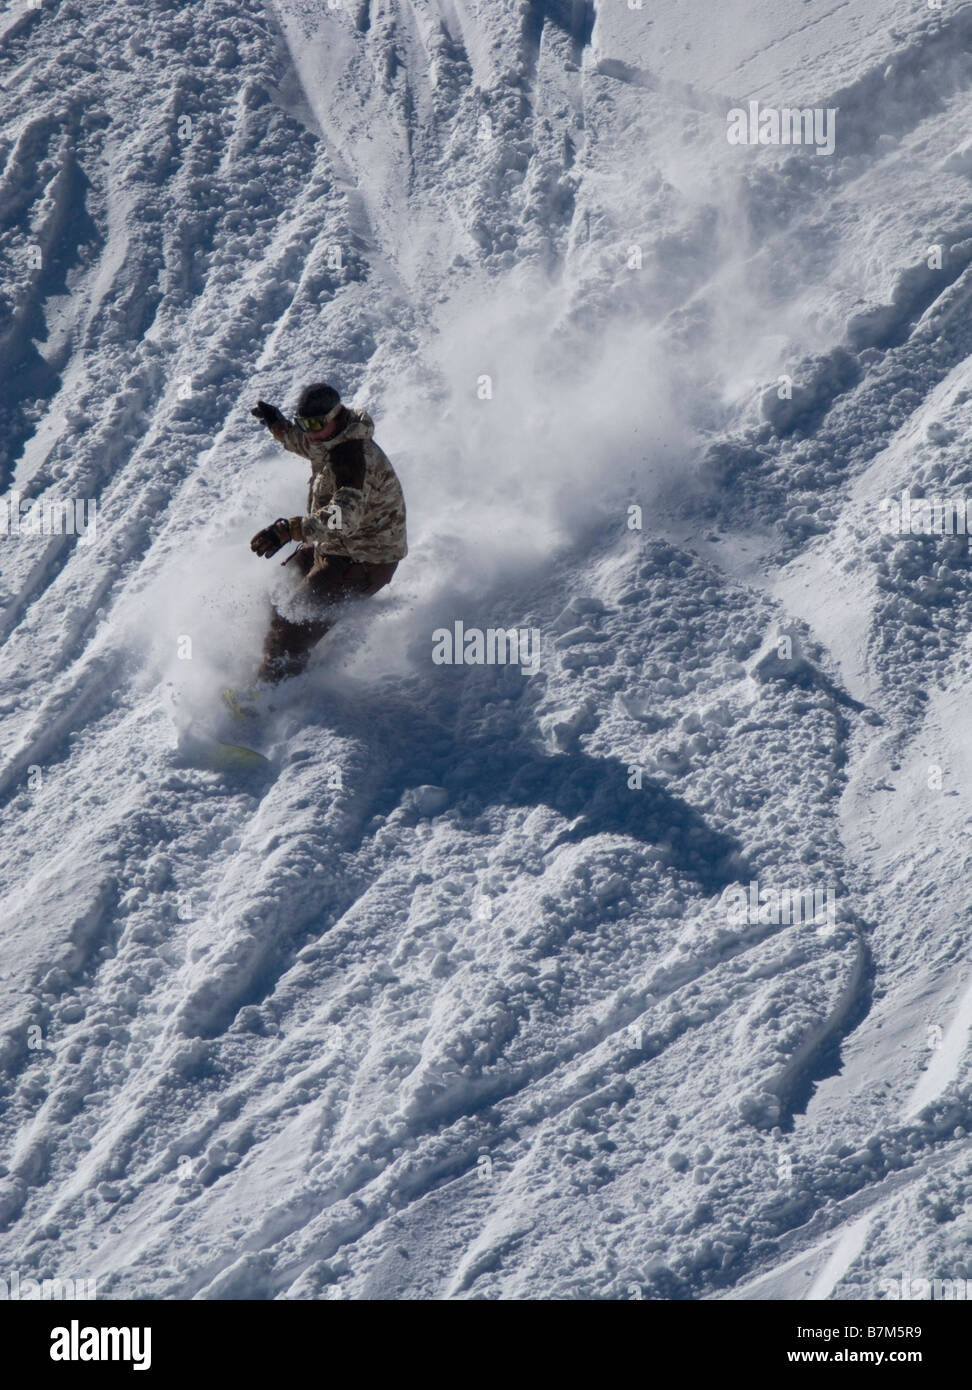 Snowboarder descending in fresh snow and sunshine at Alpine Meadows ski area above North Lake Tahoe, CA. - Stock Image